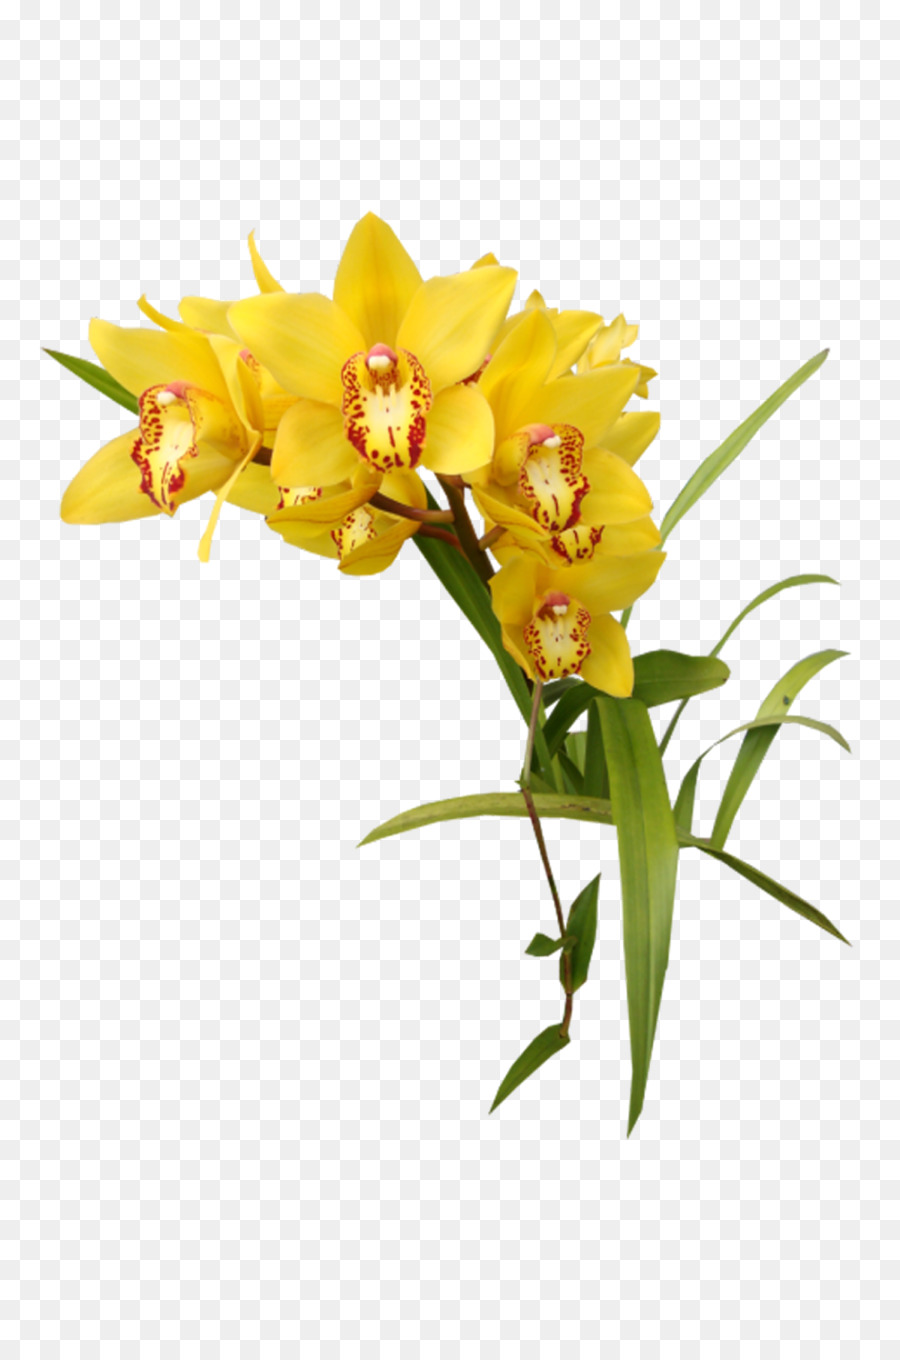 flower yellow orchids clip art - orchid png download - 1066 1600